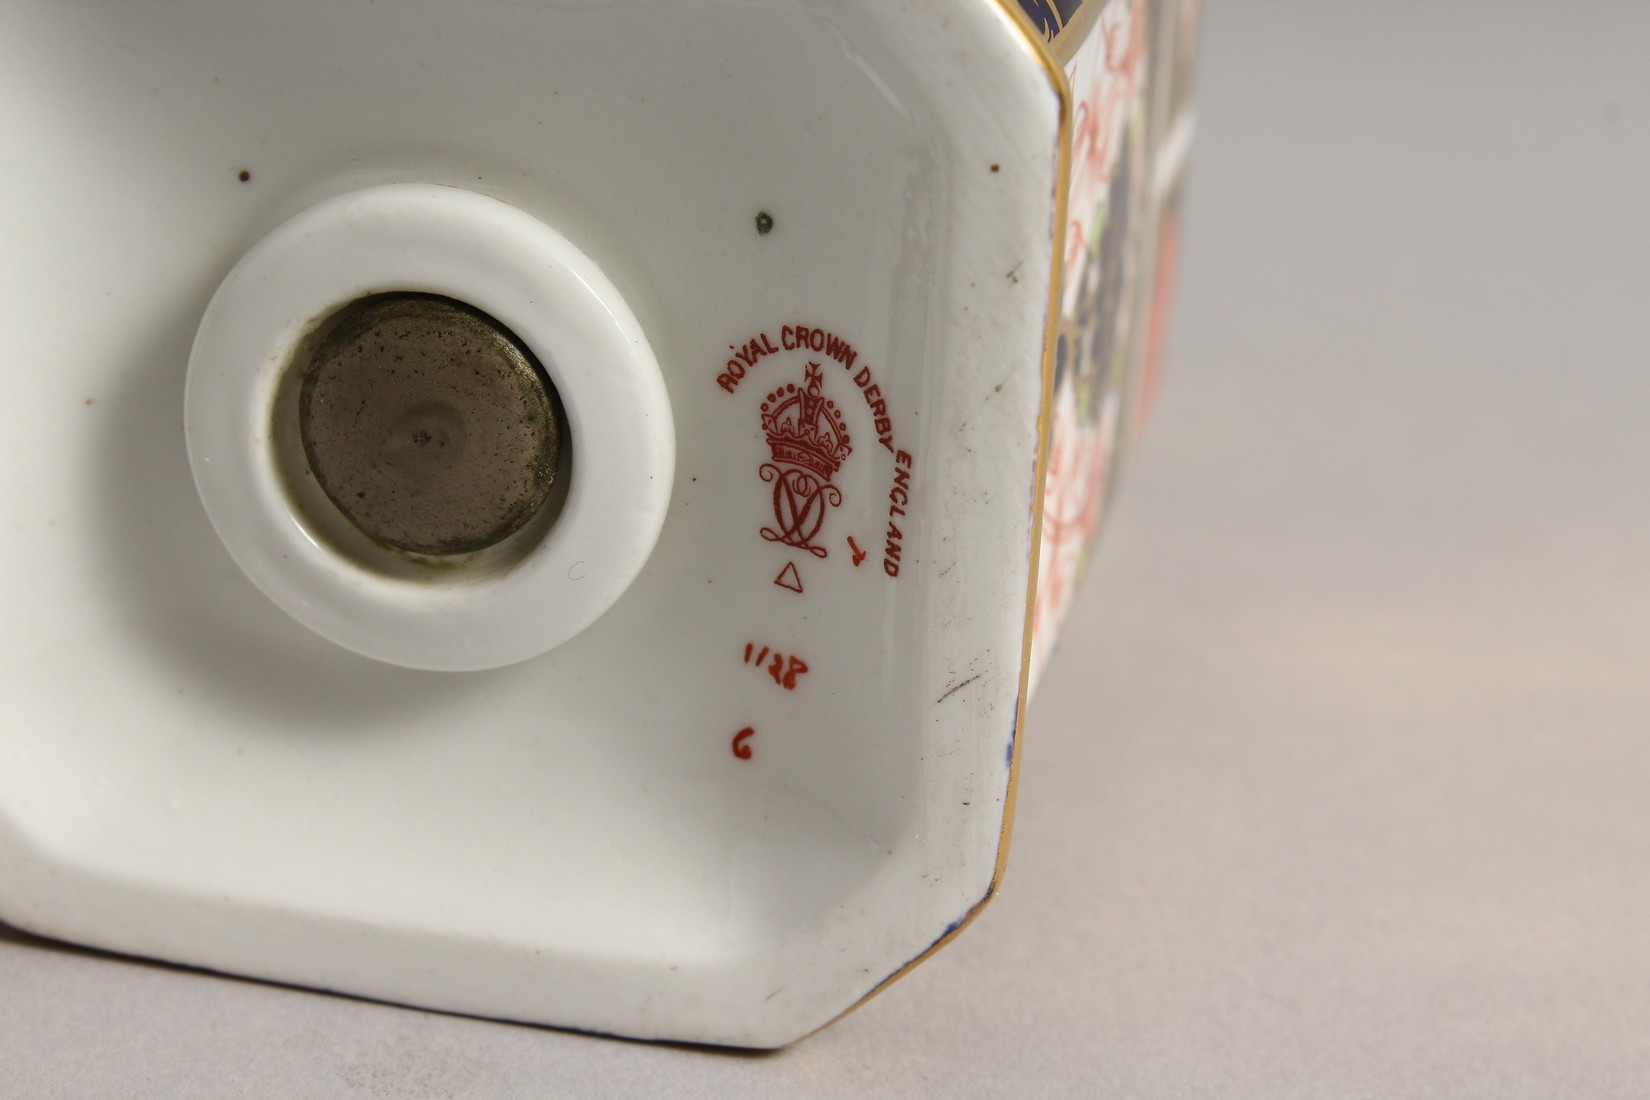 A ROYAL CROWN DERBY JAPAN PATTERN SQUARE SUGAR SIFTER, No. 1128. 6ins high and a SQUARE SUPERB BOX - Image 10 of 10